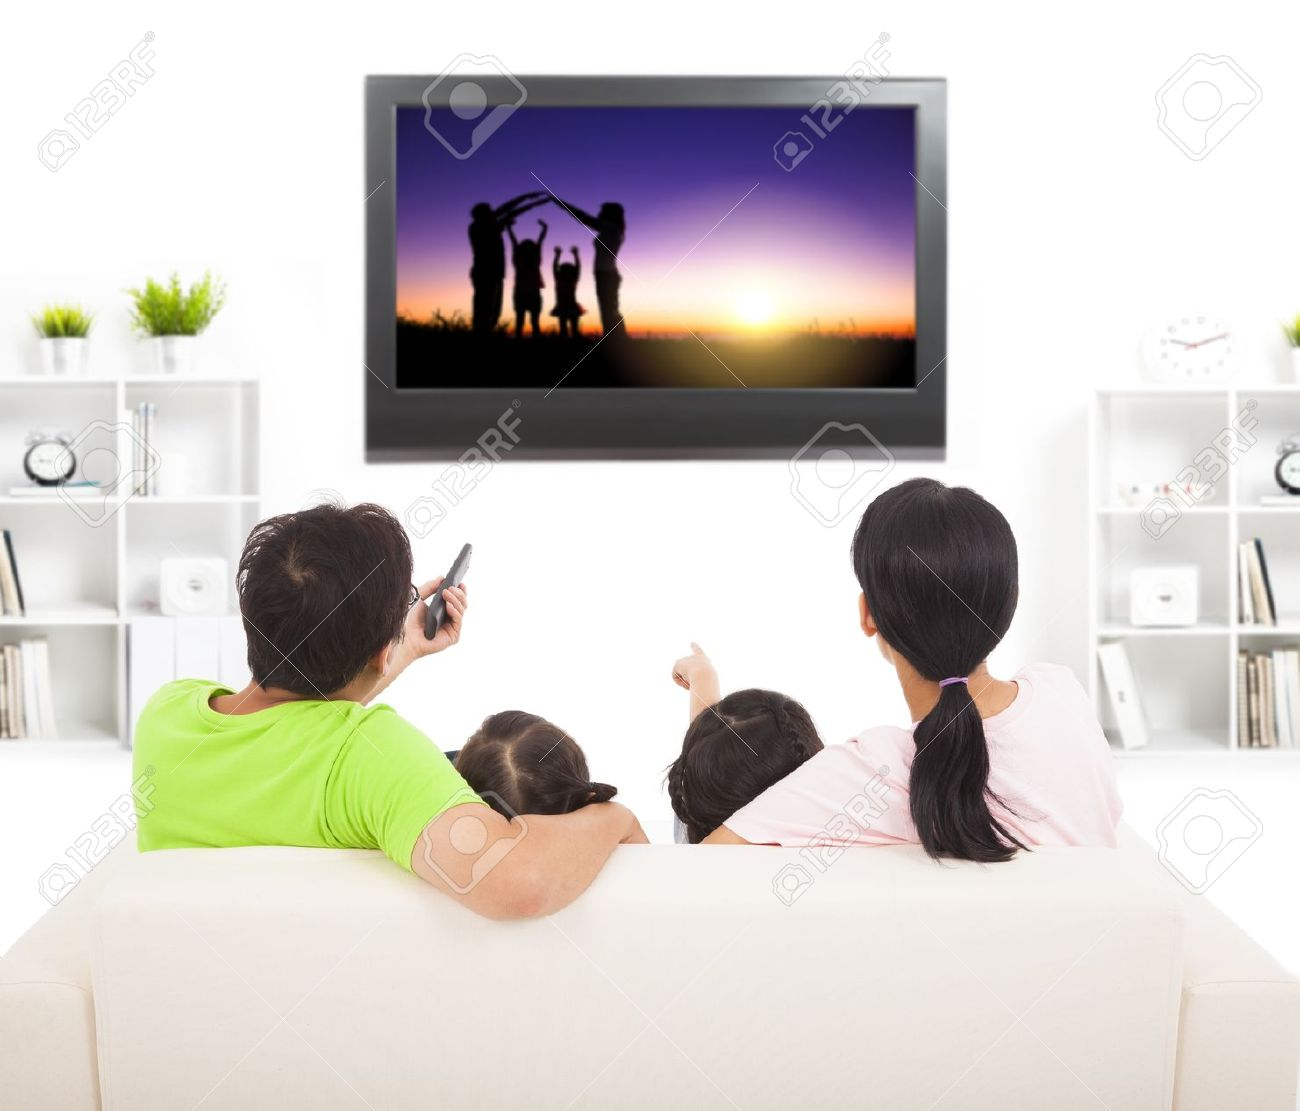 family watching the tv in living room Stock Photo - 21857073